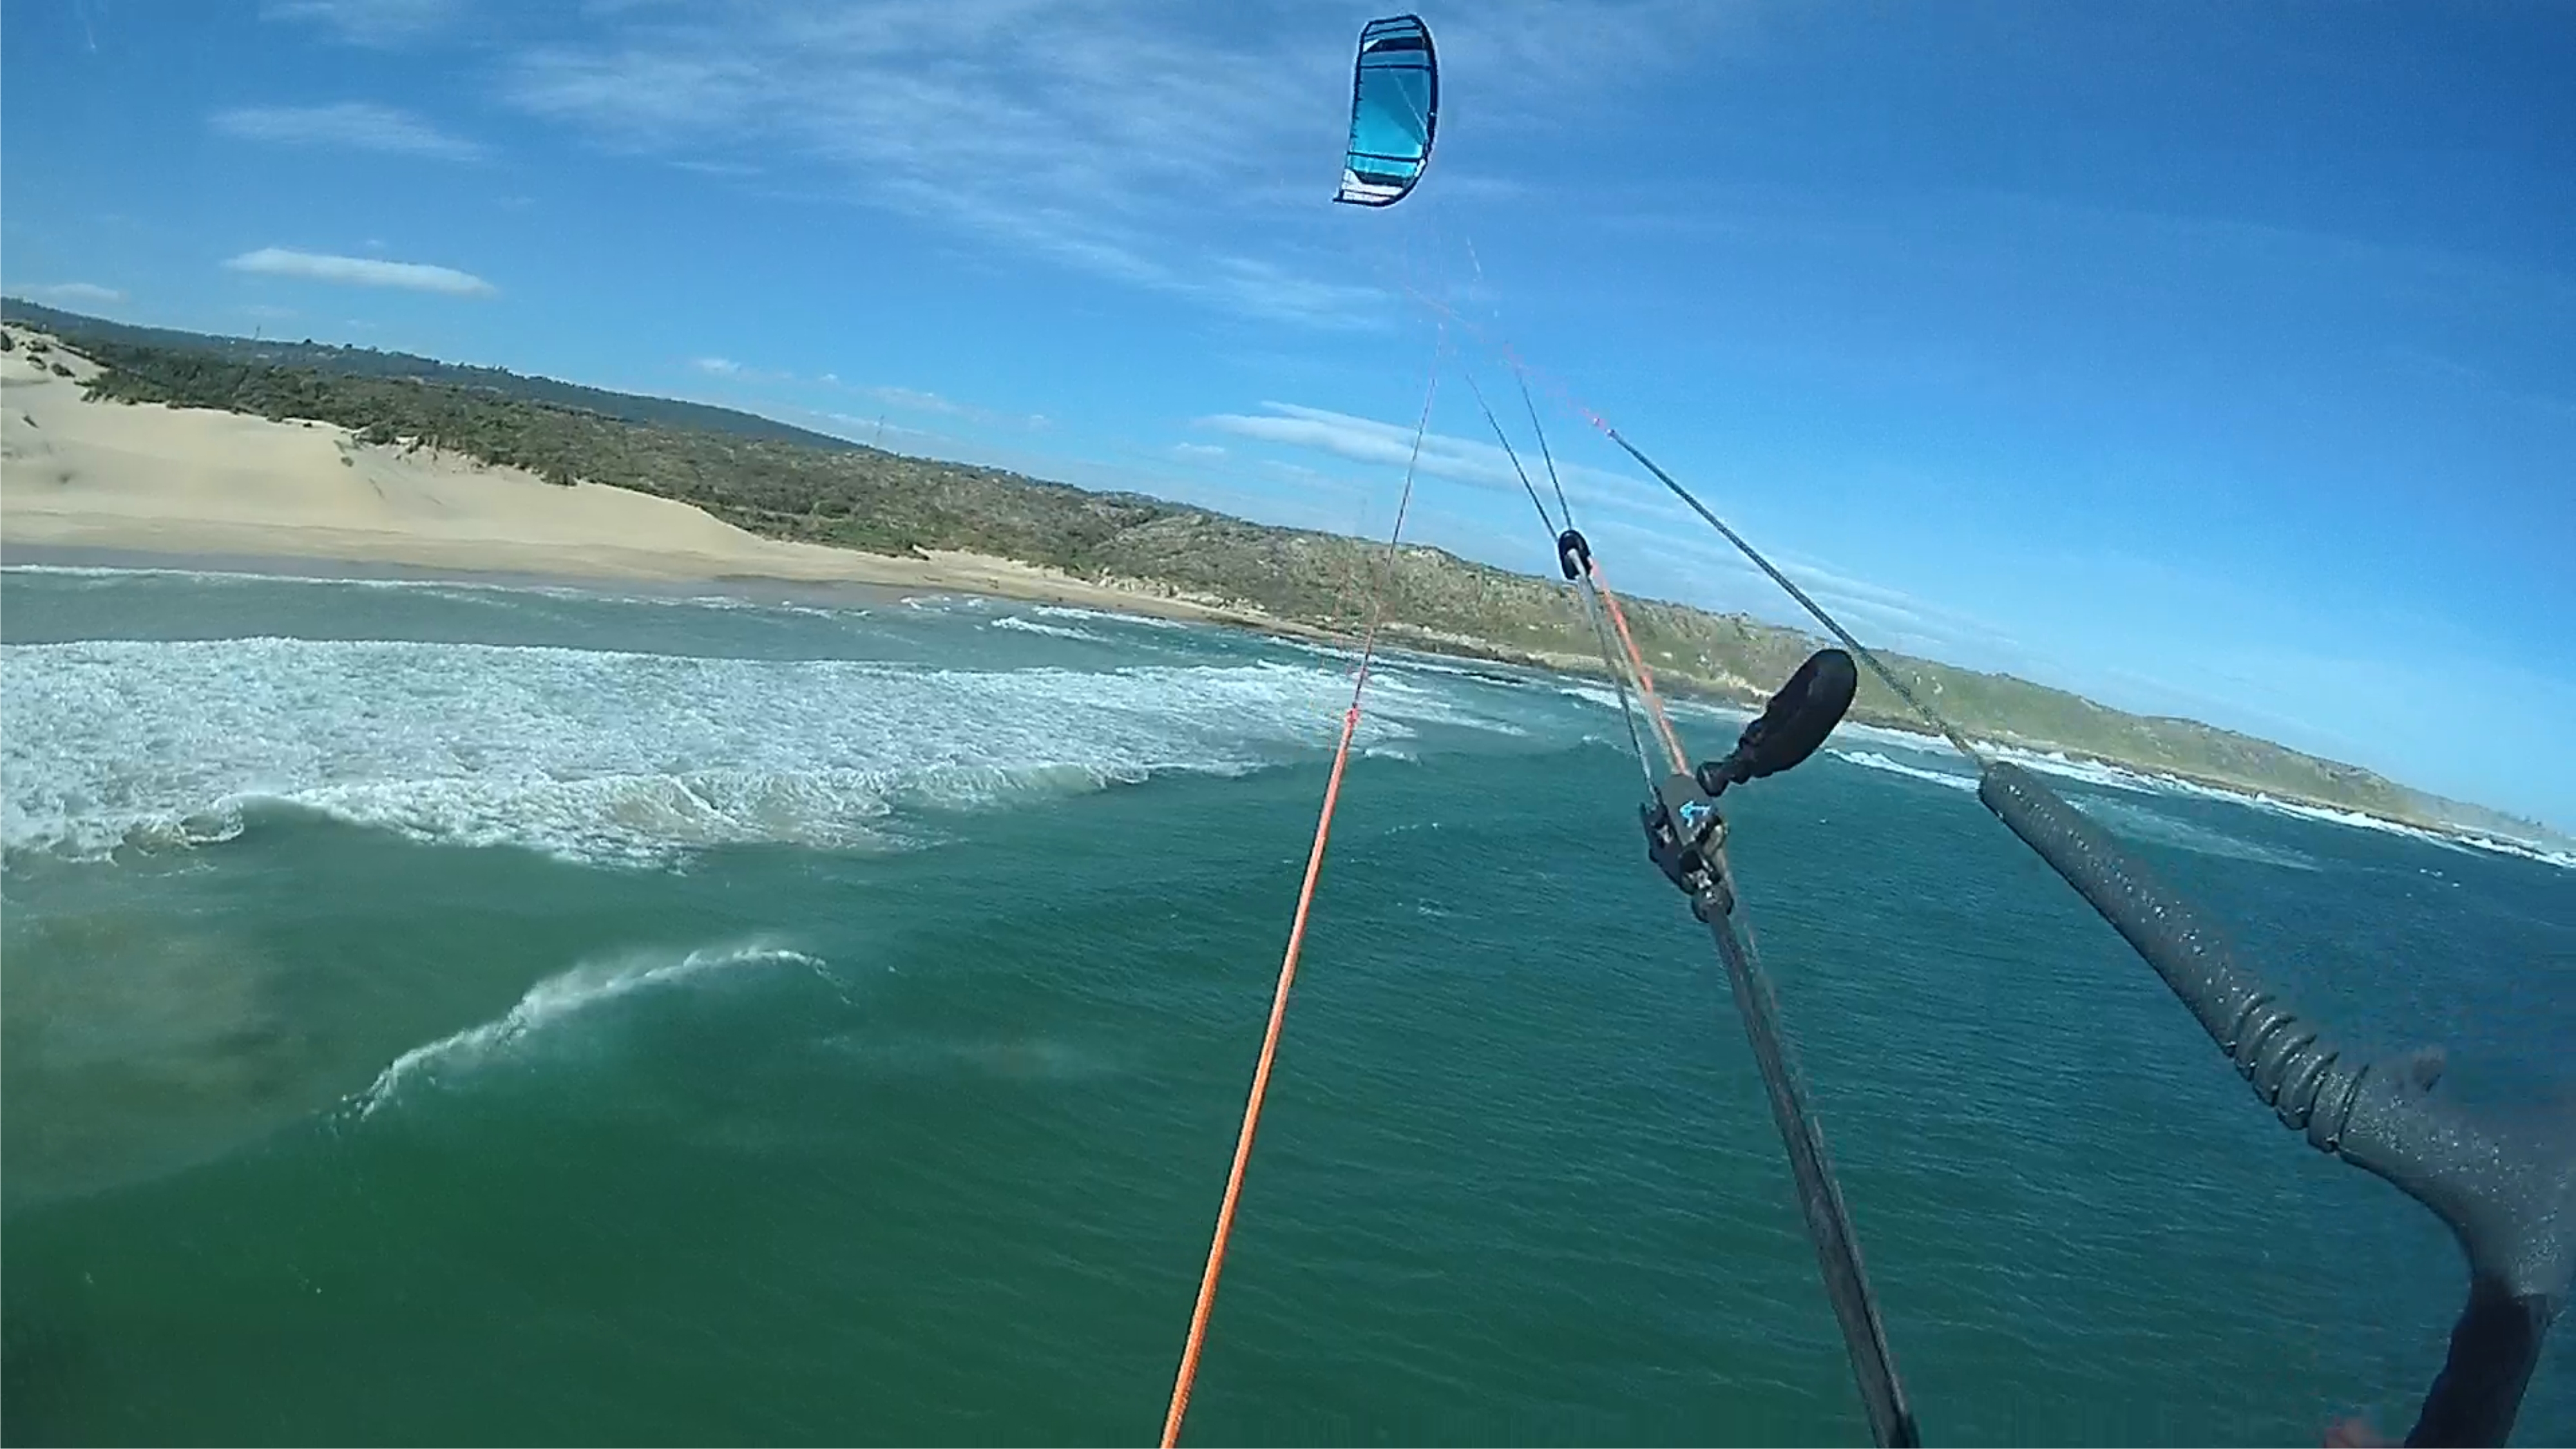 Swing Kiteboarding - Sards 8